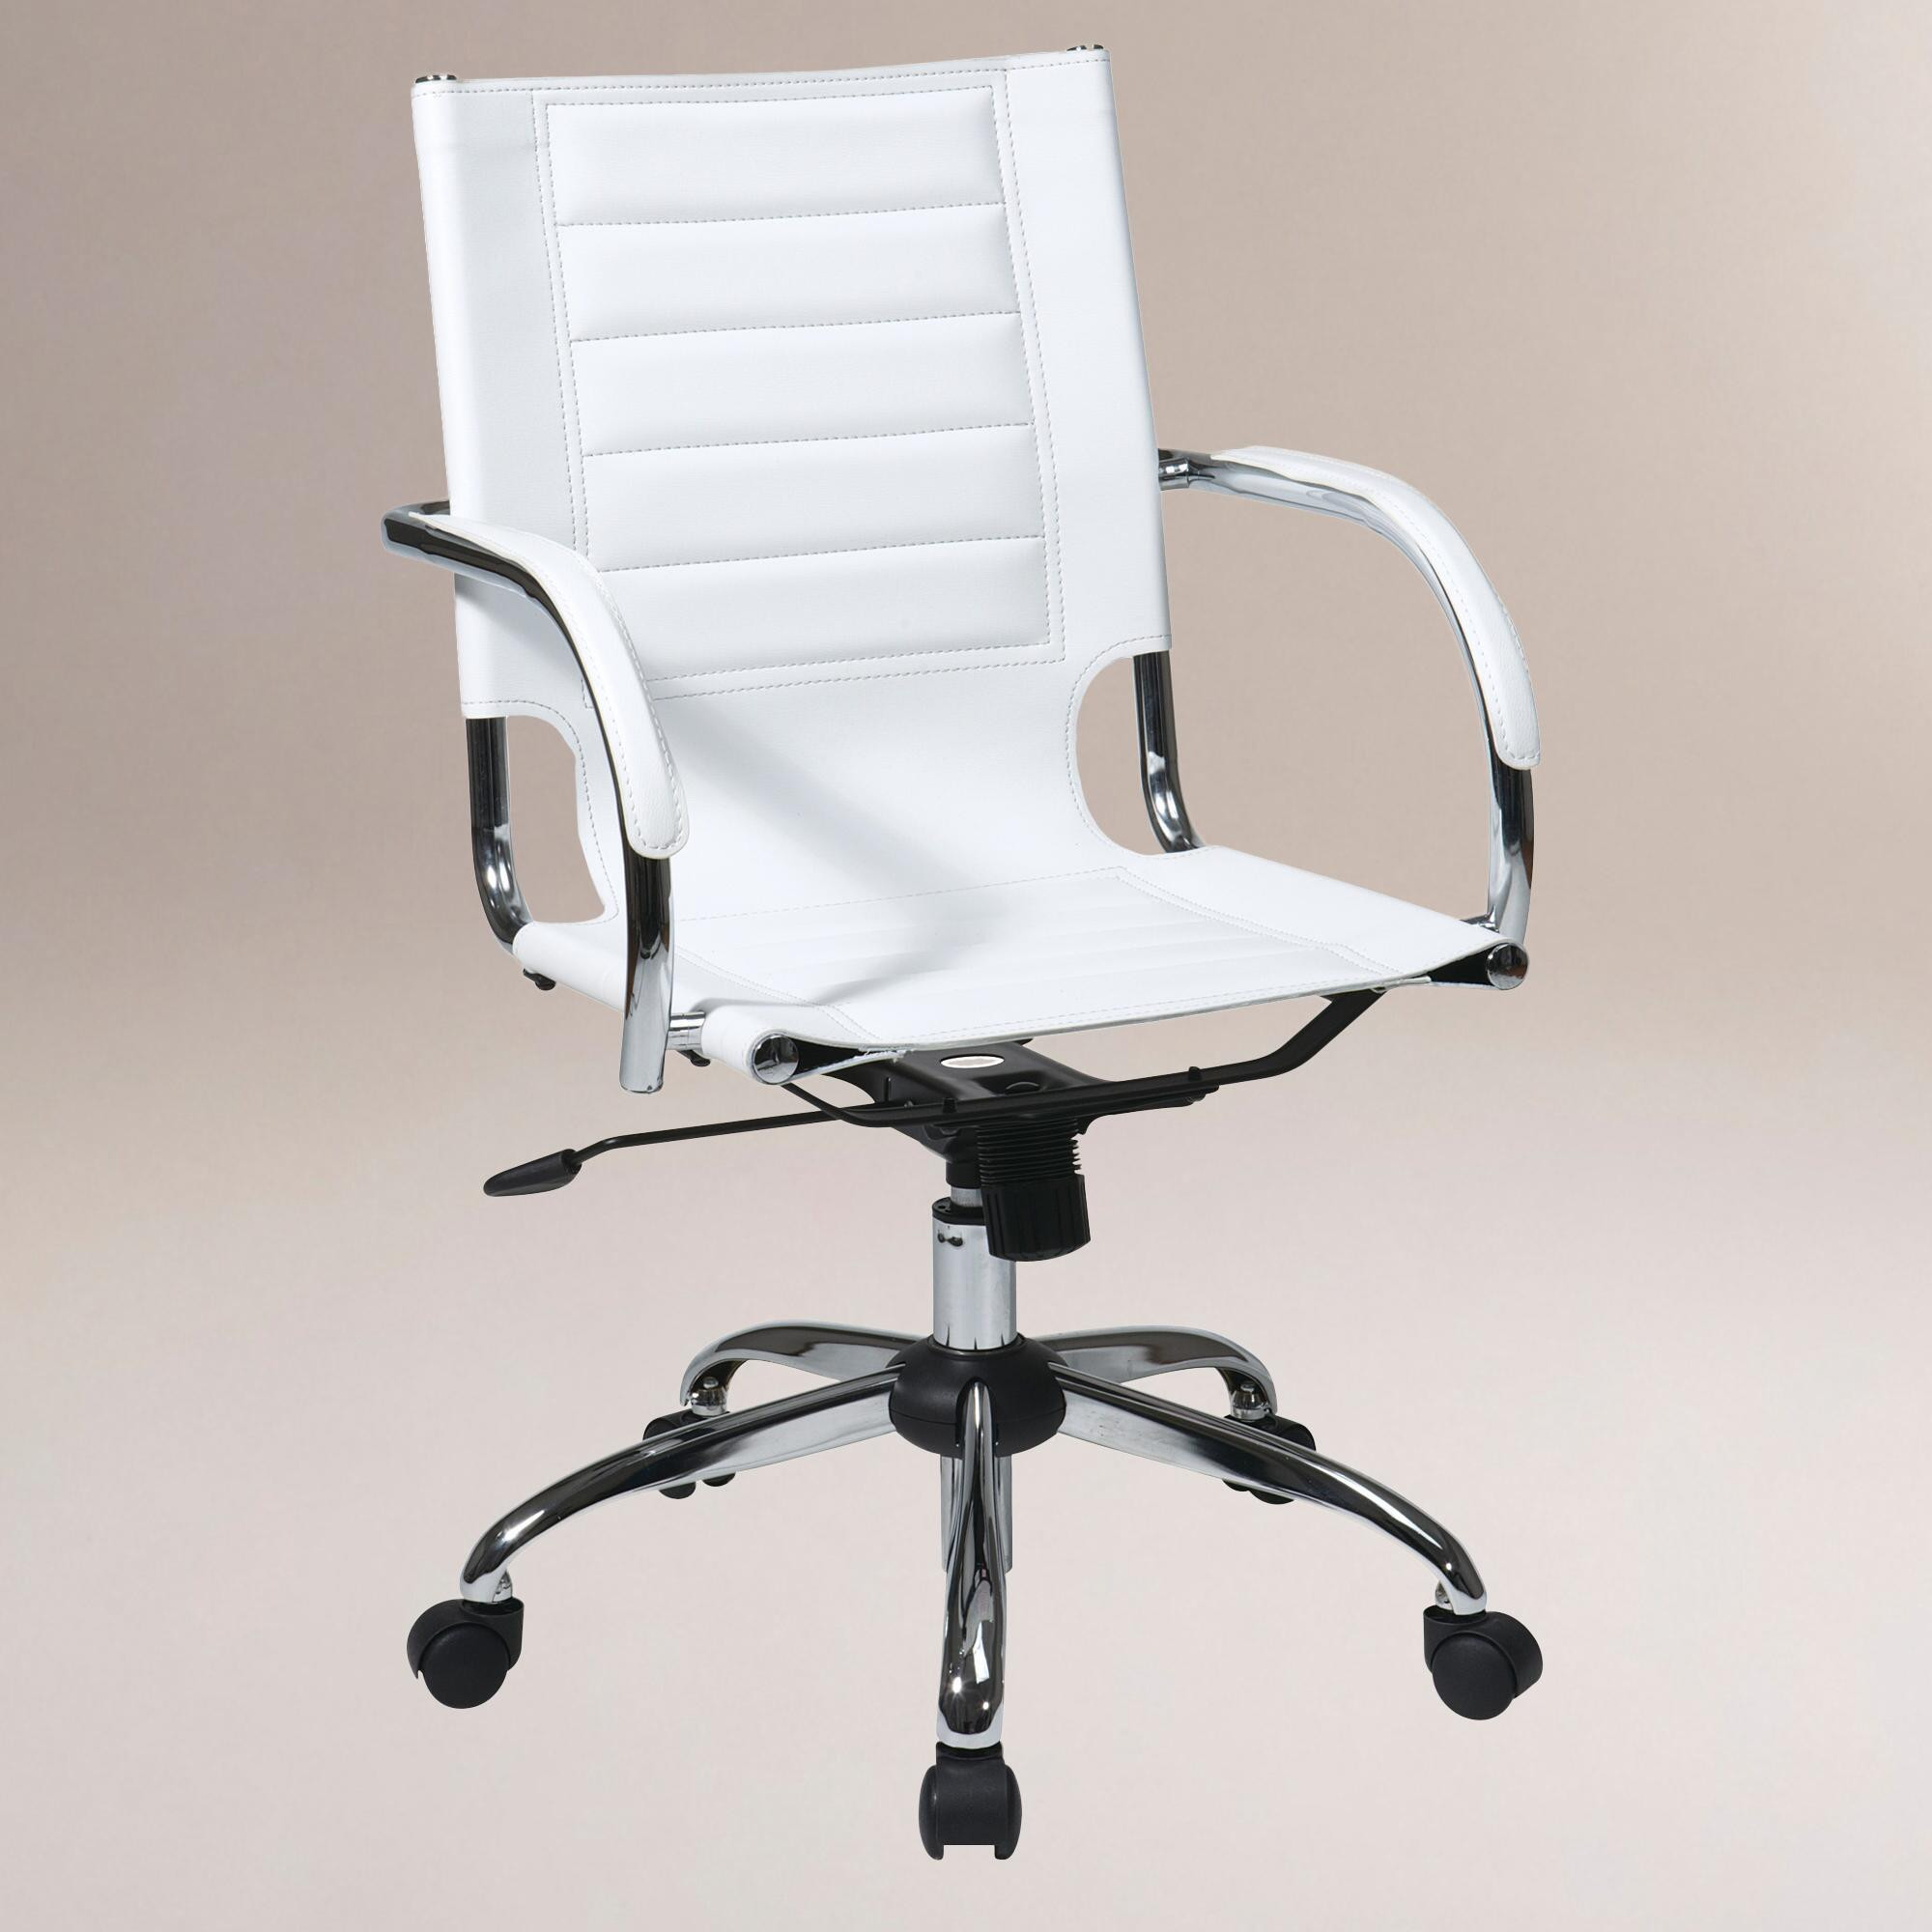 Best ideas about White Office Chair . Save or Pin White Grant fice Chair Now.